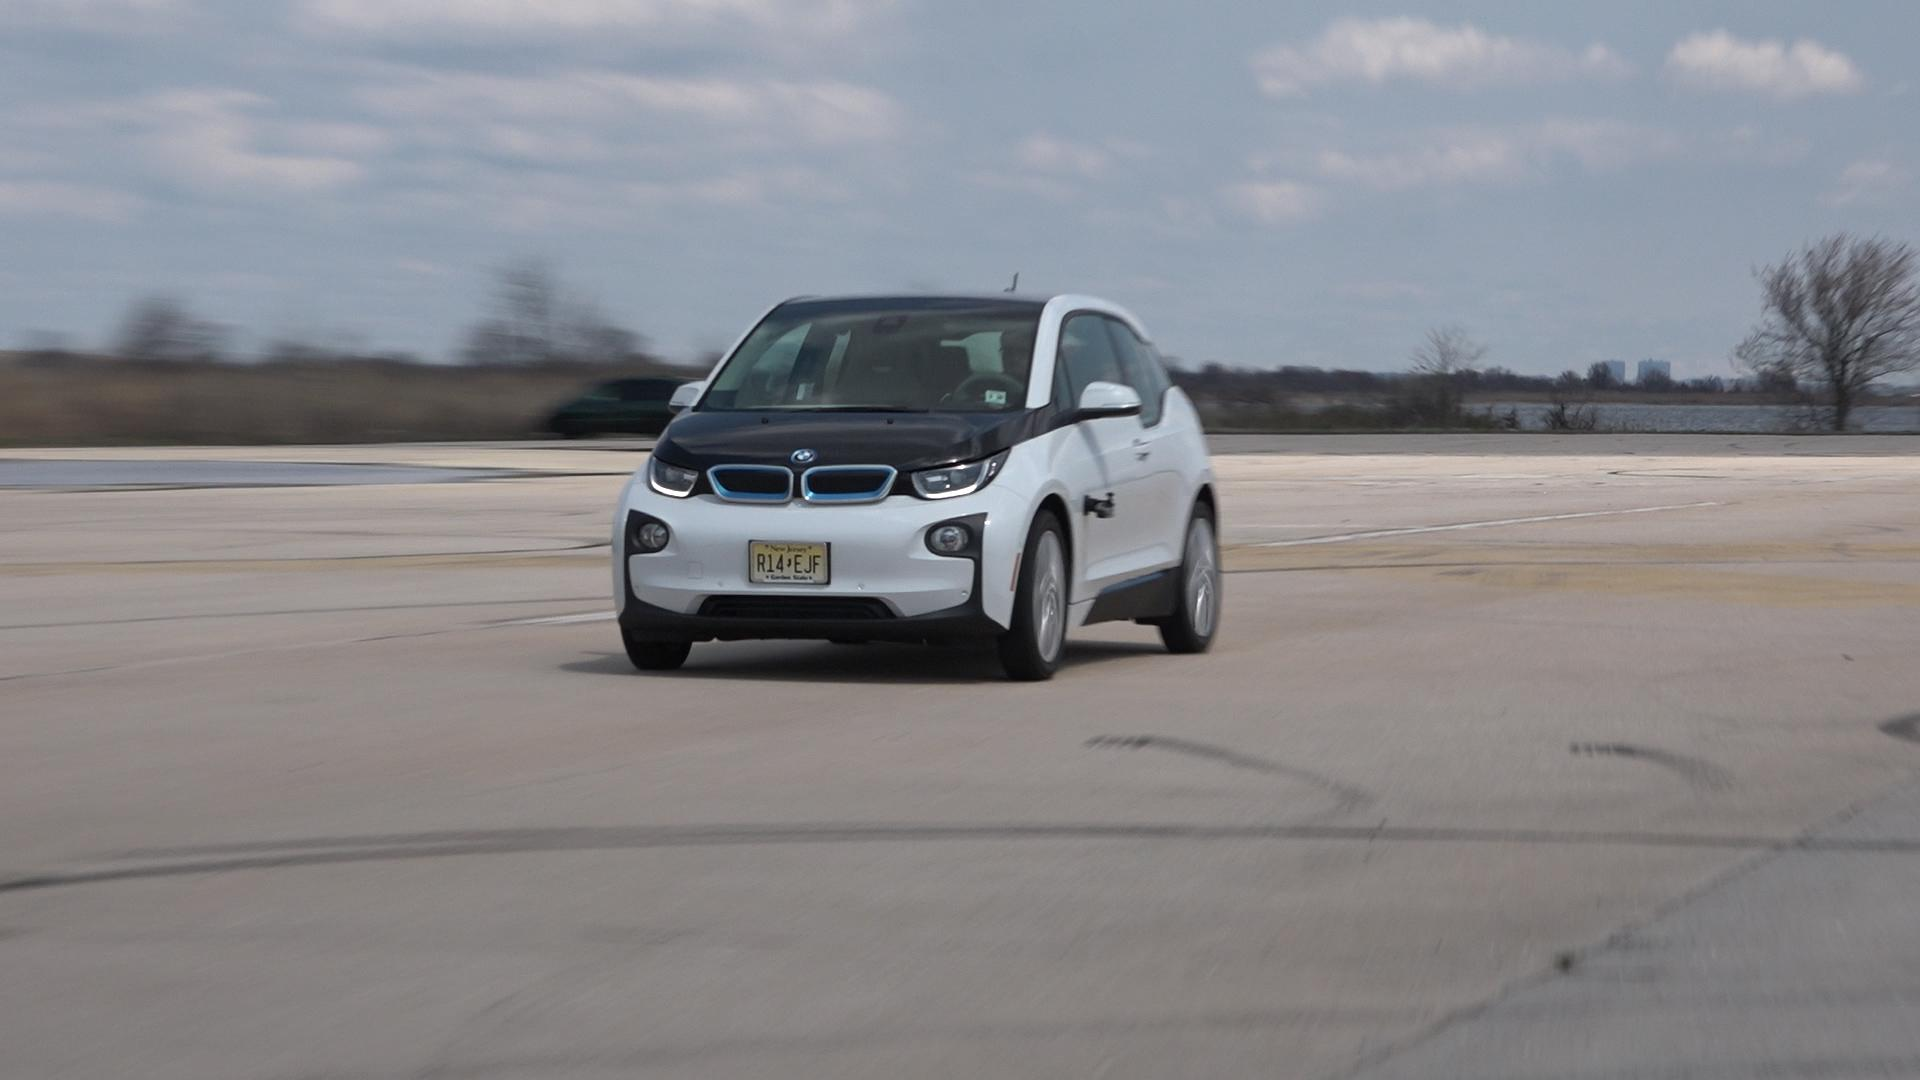 BMW i3 accelerating